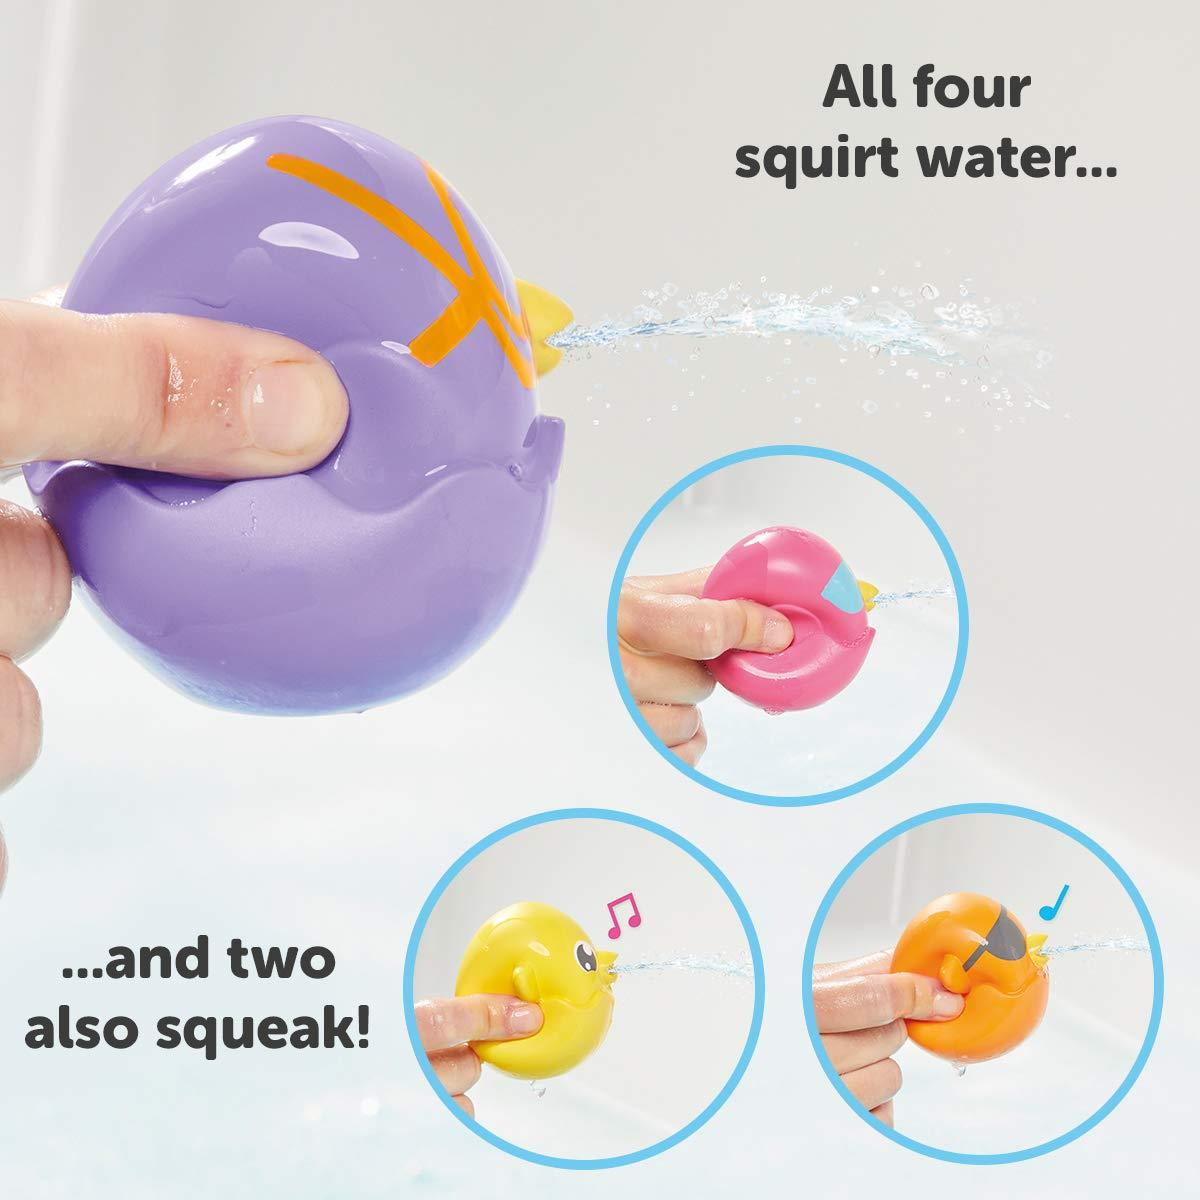 TOMY Toomies Hide and Squeak Bath SquirtersSet of 4 Squeezable Baby Bath|